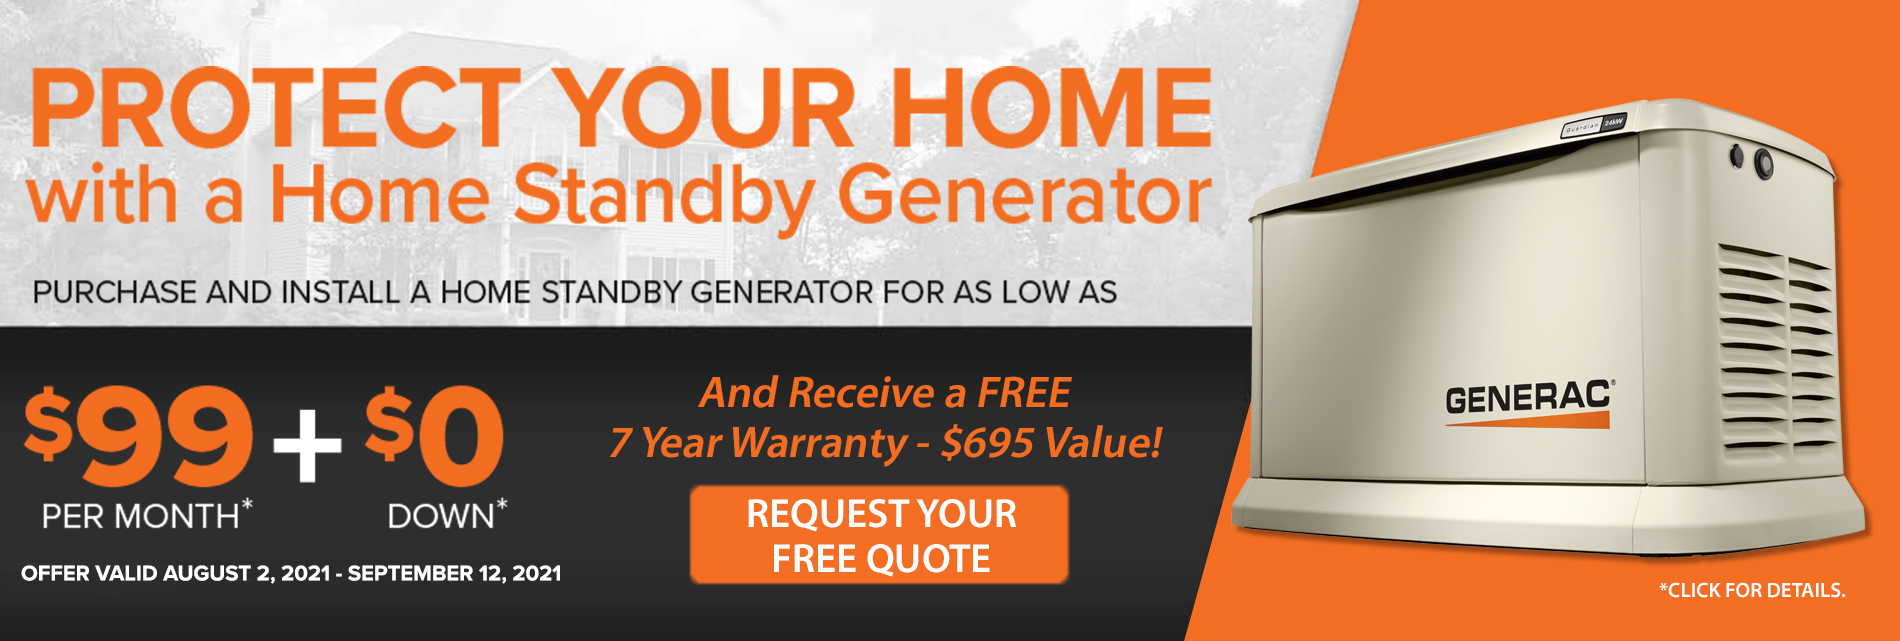 Protect Your Home with a Home Standby Generator - Special Financing Available